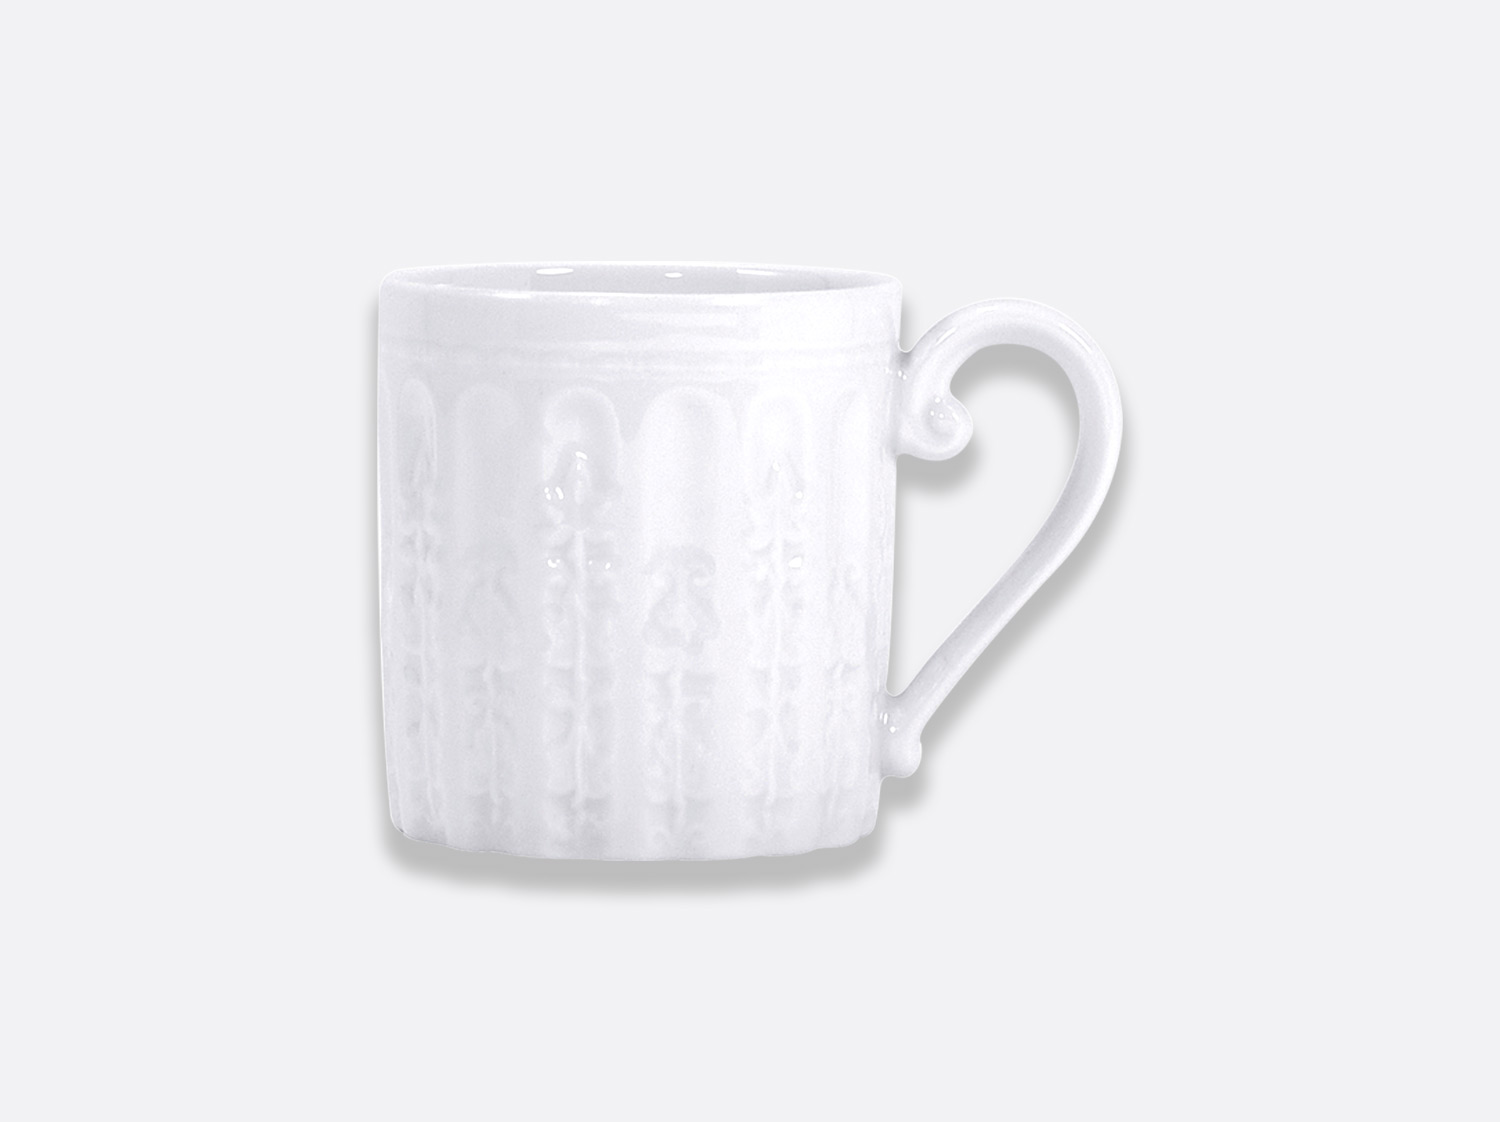 Mug 30 cl en porcelaine de la collection Louvre Bernardaud